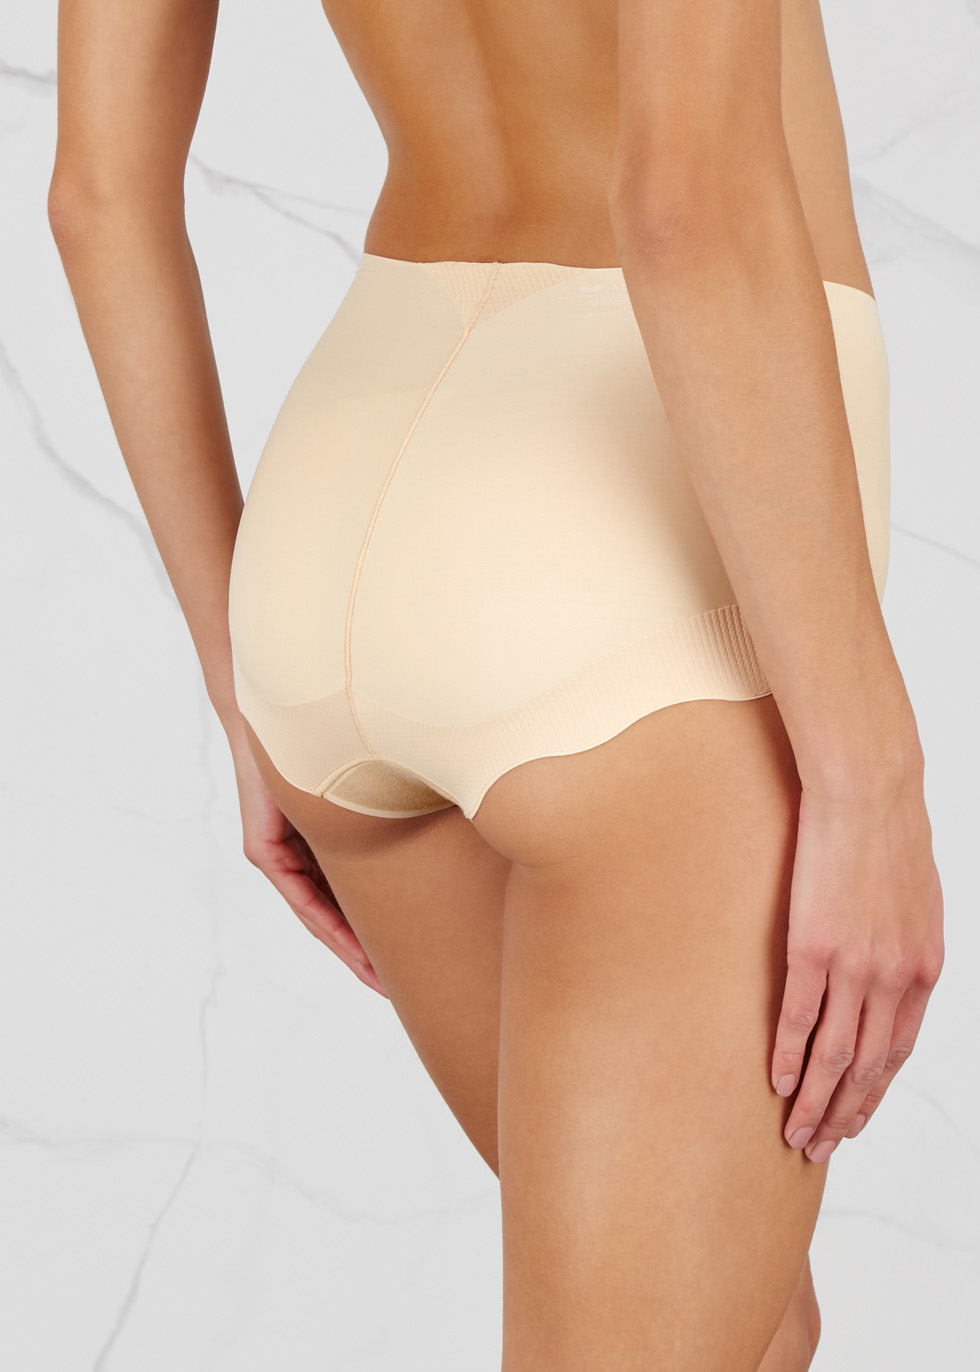 Beyond Naked shaping briefs - Wacoal